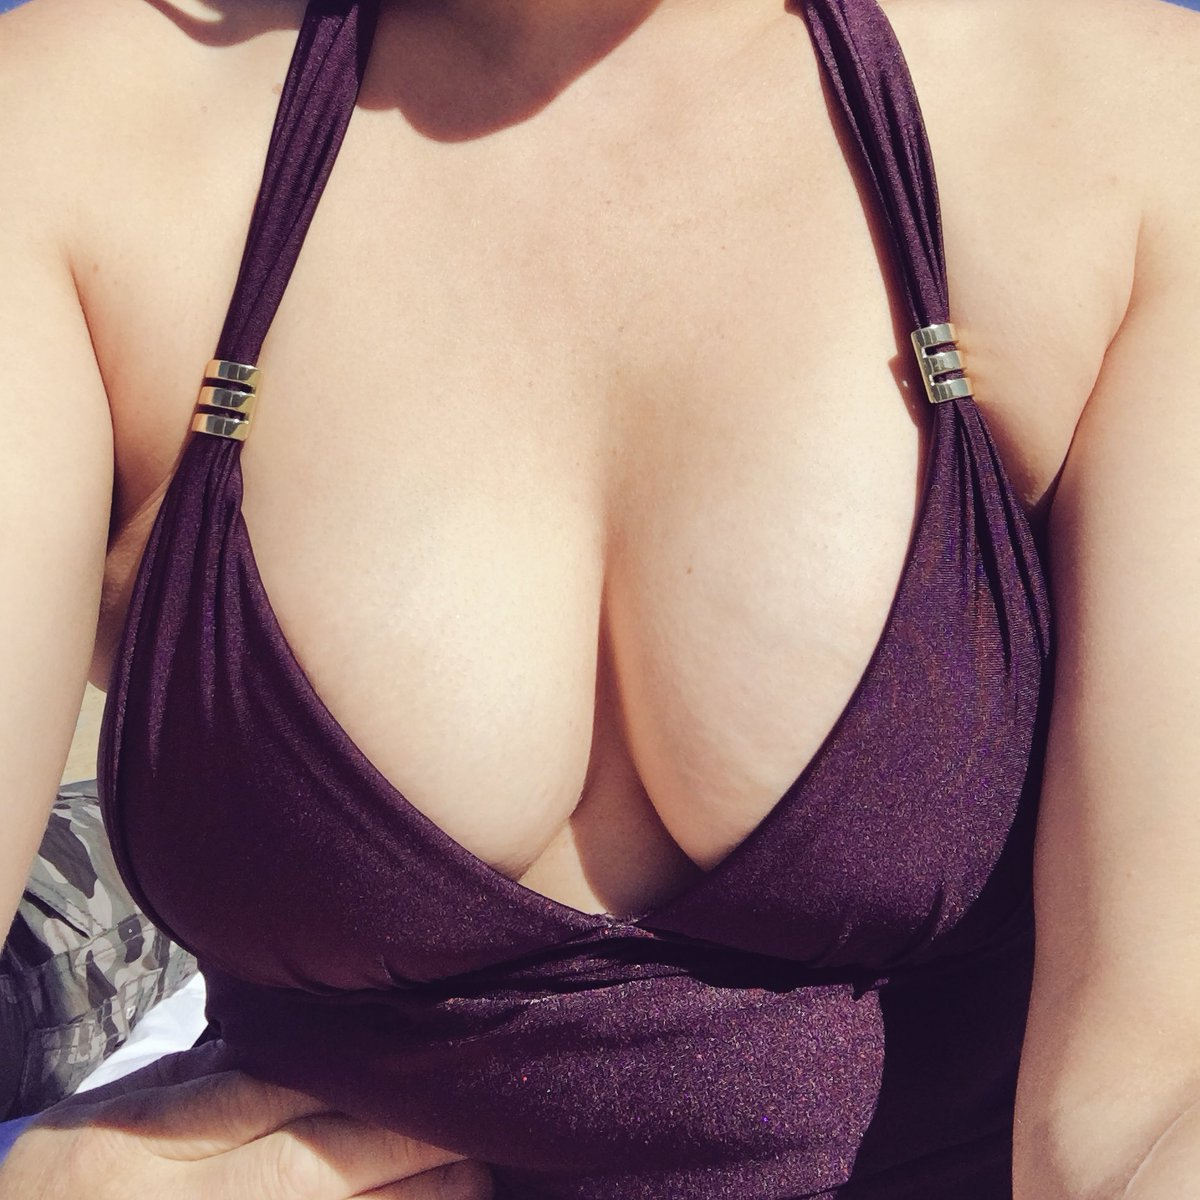 so happy with my breast implant removal results. 🌸 PfHwZLk6Tm